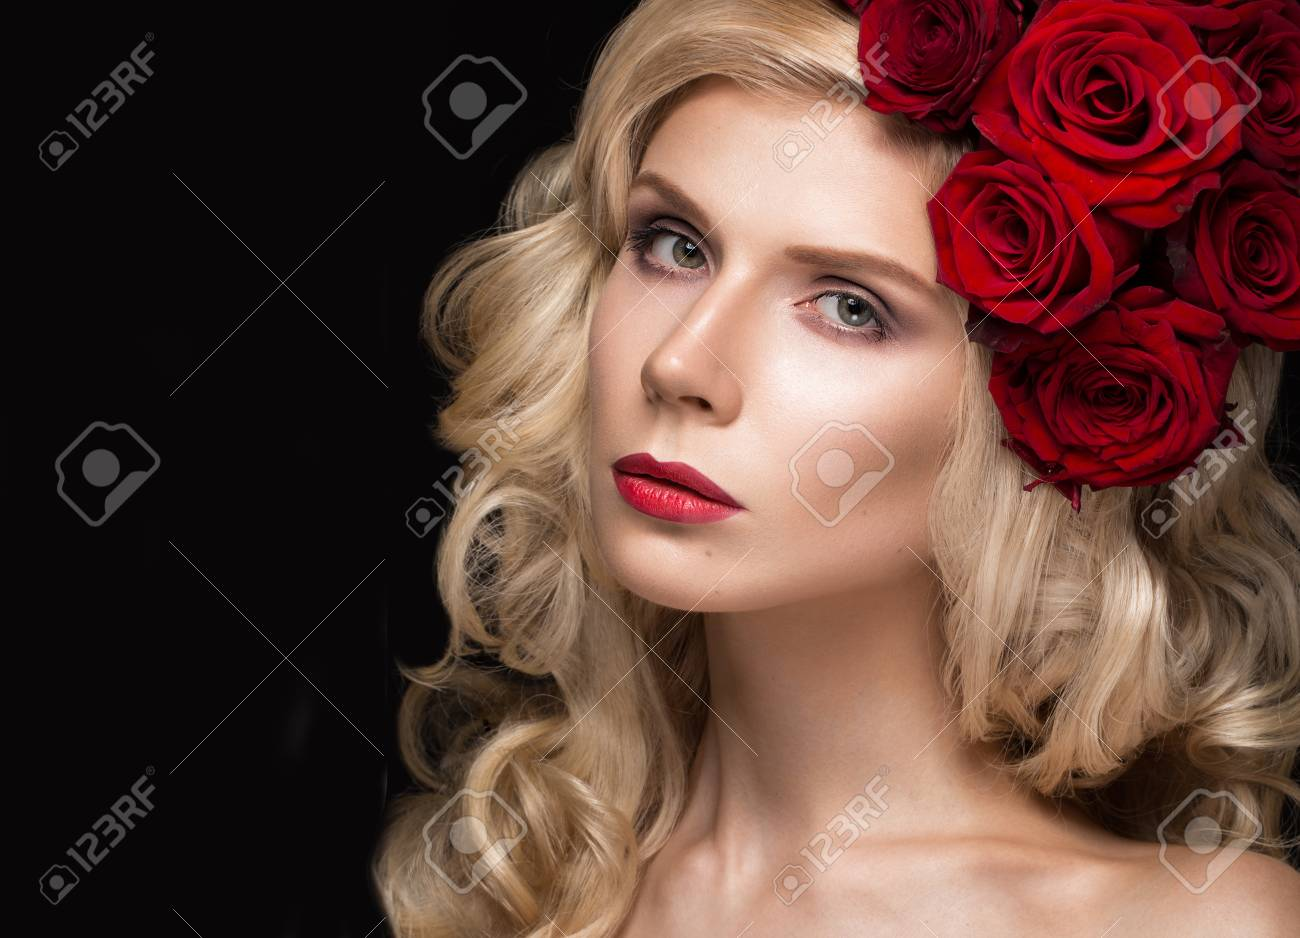 Beautiful blond with roses picture 733